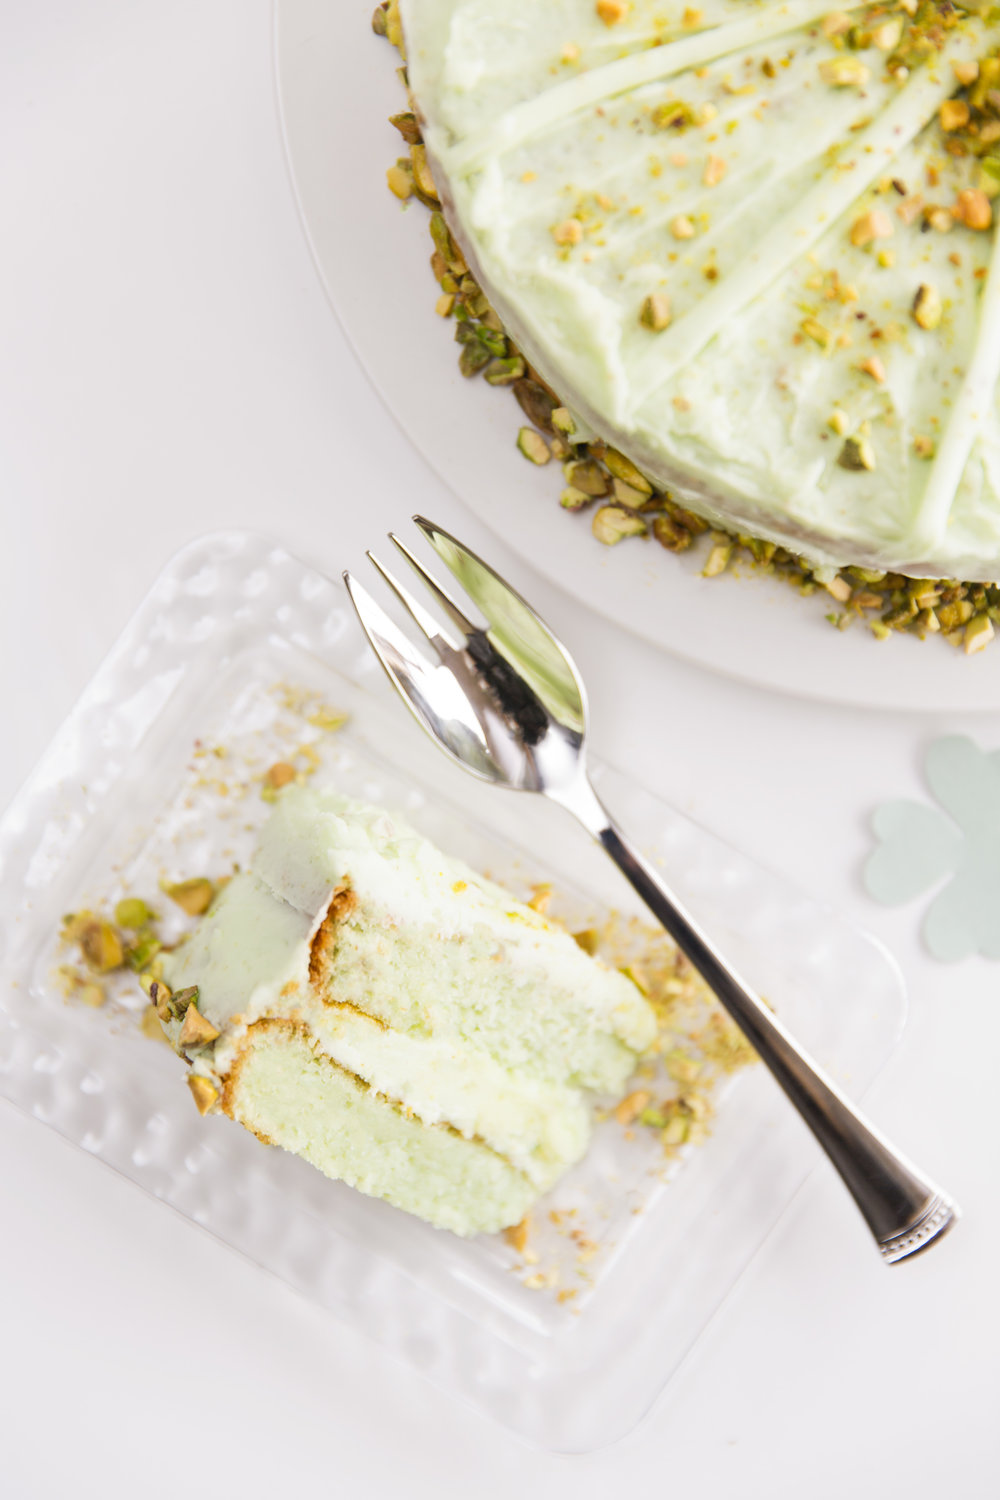 5 Ingredient Super Moist Pistachio 7UP Layer Cake with Pistachio Frosting Recipe